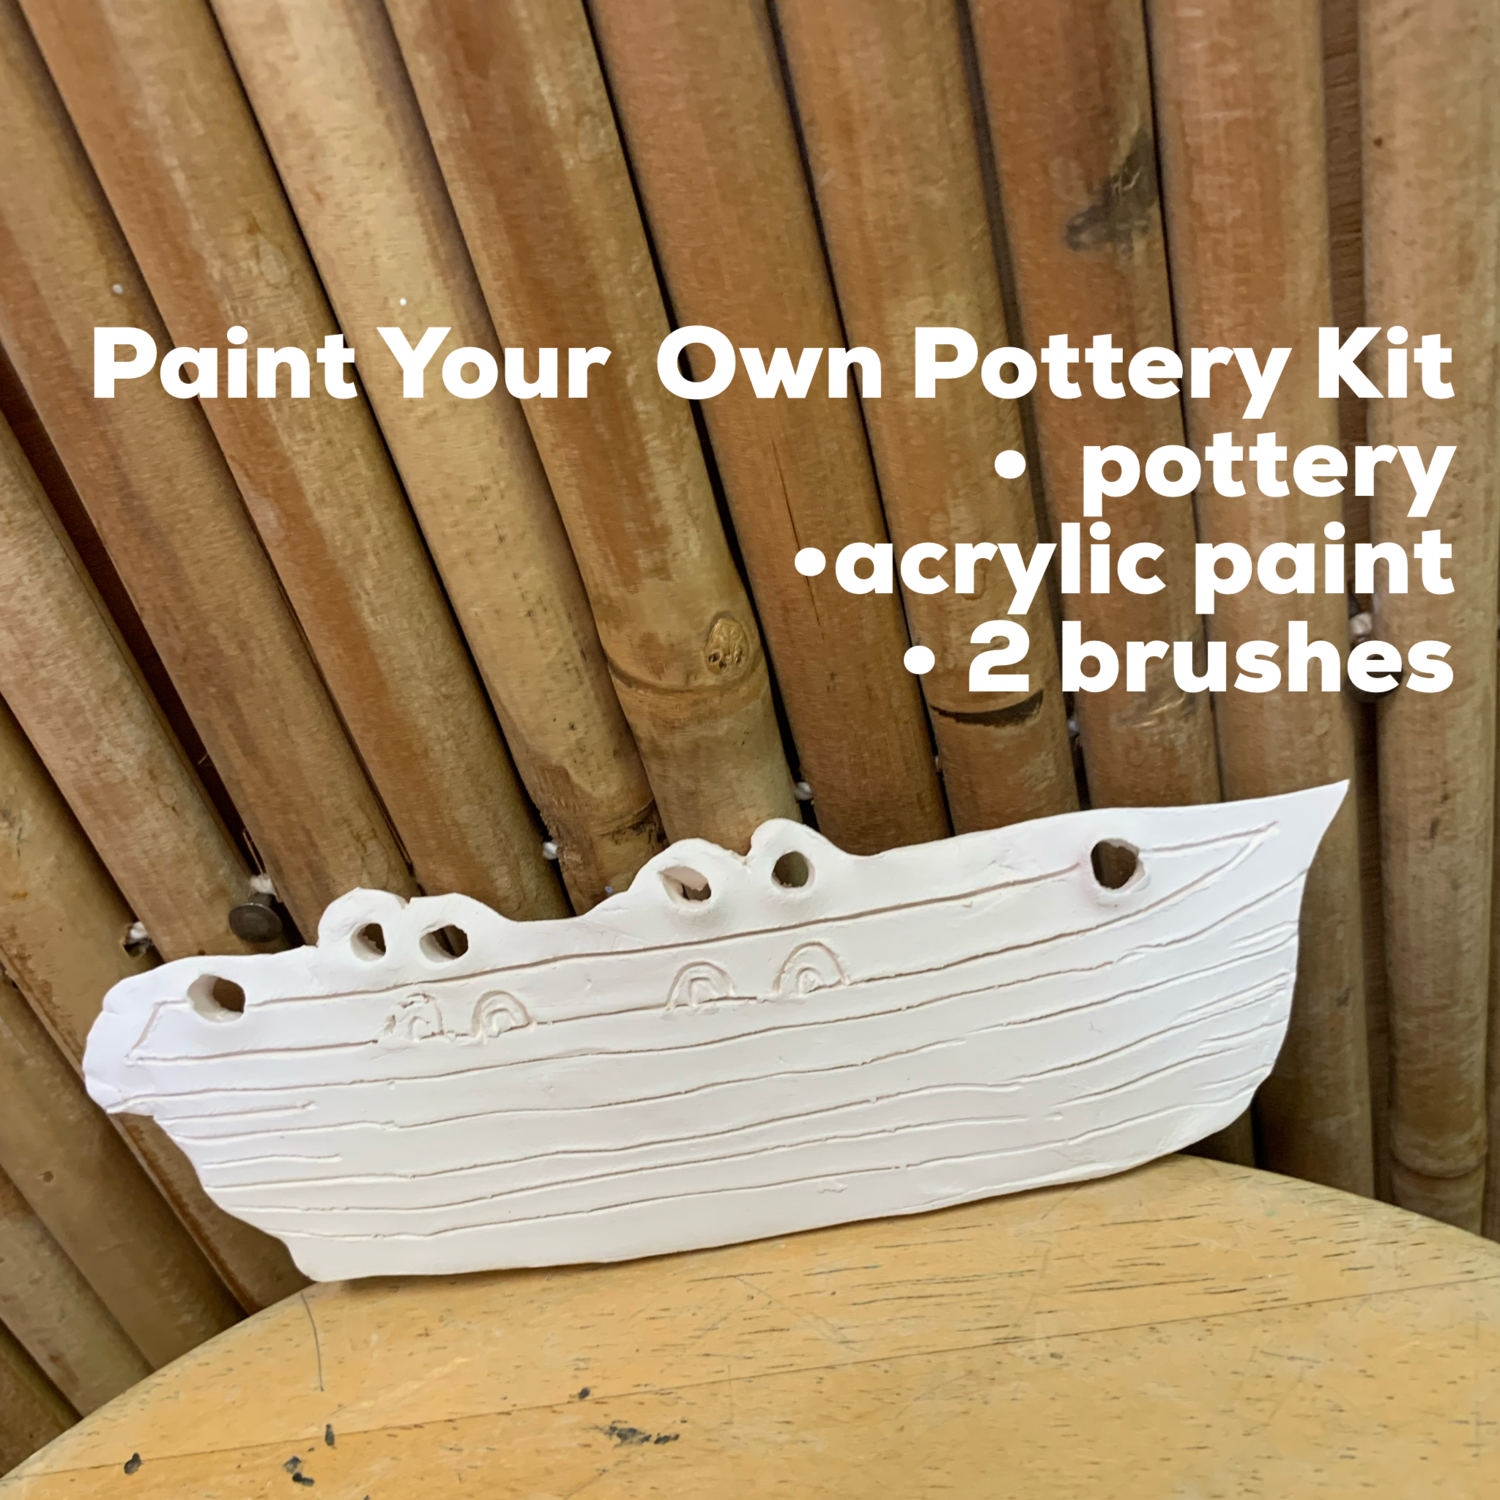 NO FIRE Paint Your Own Pottery Kit -  Ceramic Lifeguard Boat Ornament Acrylic Painting Kit